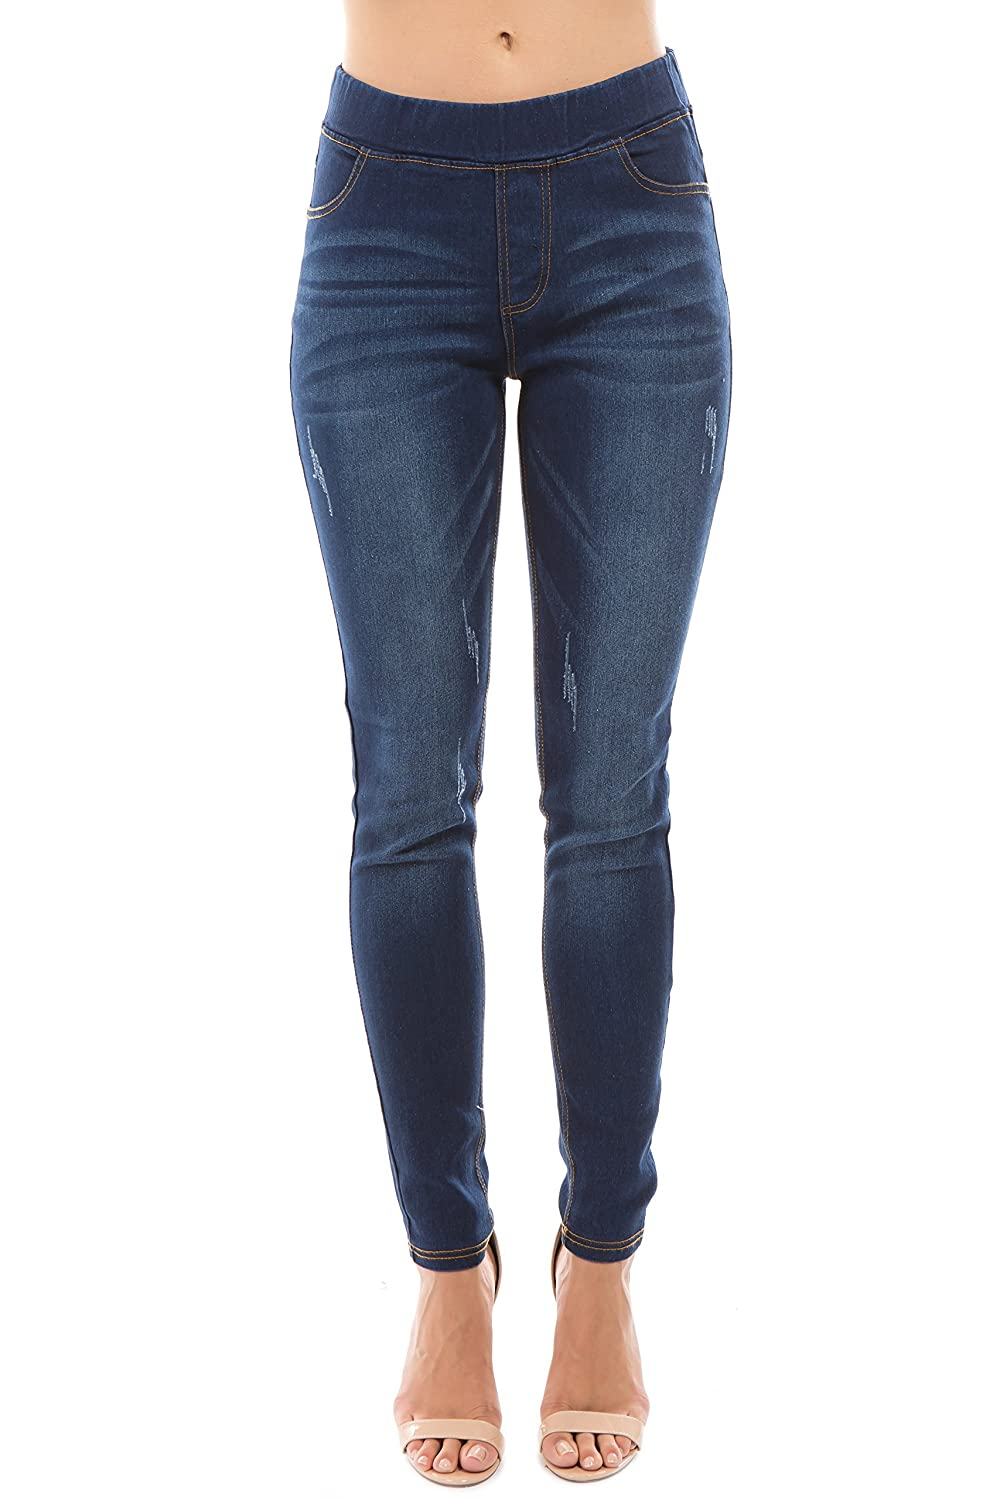 Dk bluee_dis4 Trinity Jeans Women's Distressed Ripped Cut Pull On Stretch Skinny Denim Jeggings